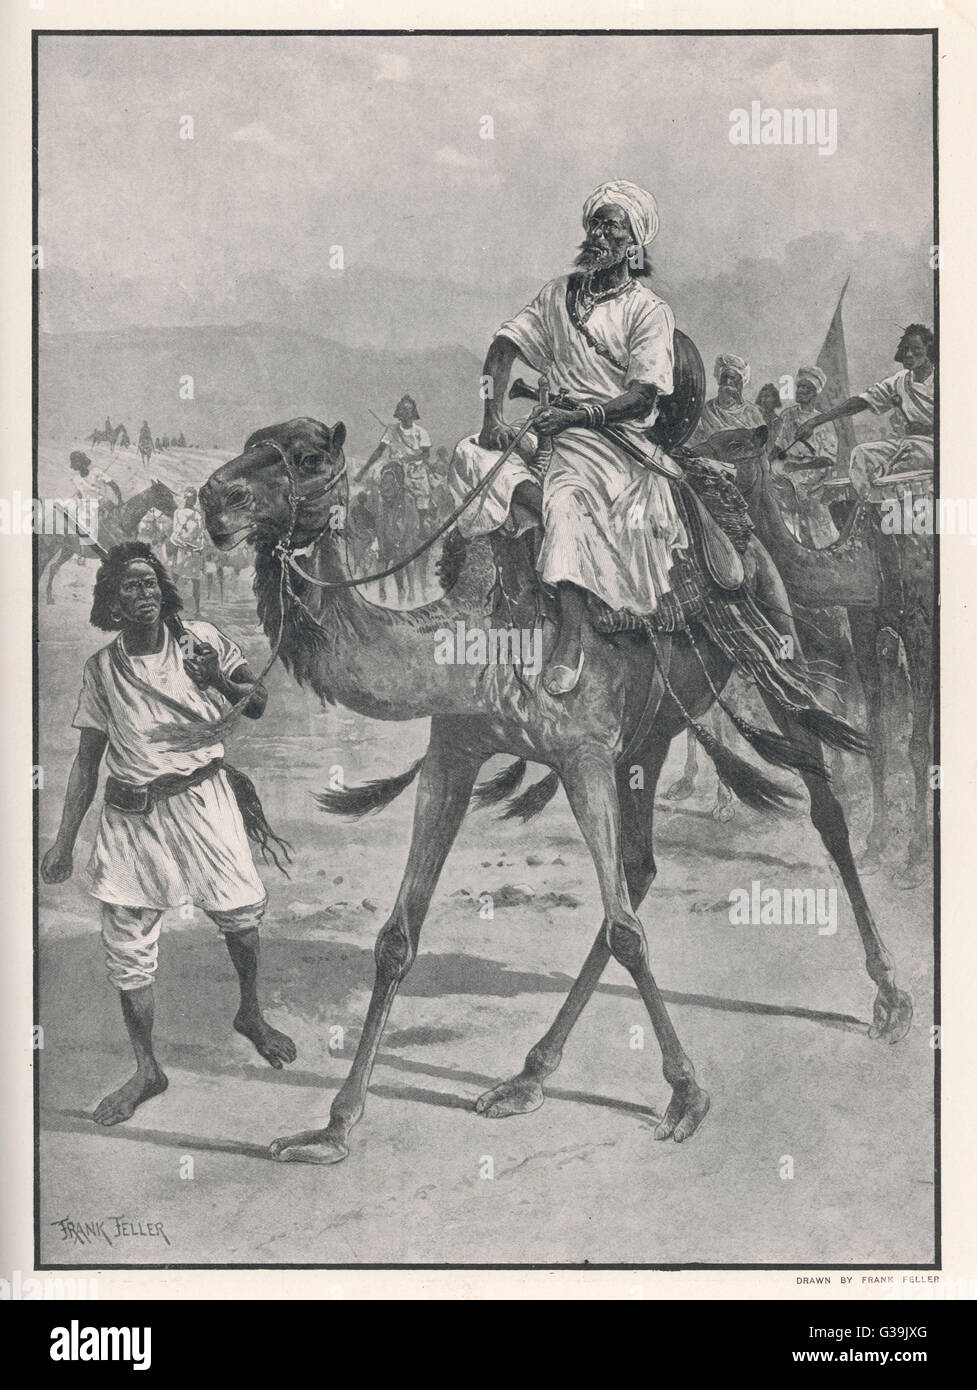 Haji Mahomed Bui Abdullah,  known as the Mad Mullah, often  defeated by the British but  never captured, will still - Stock Image